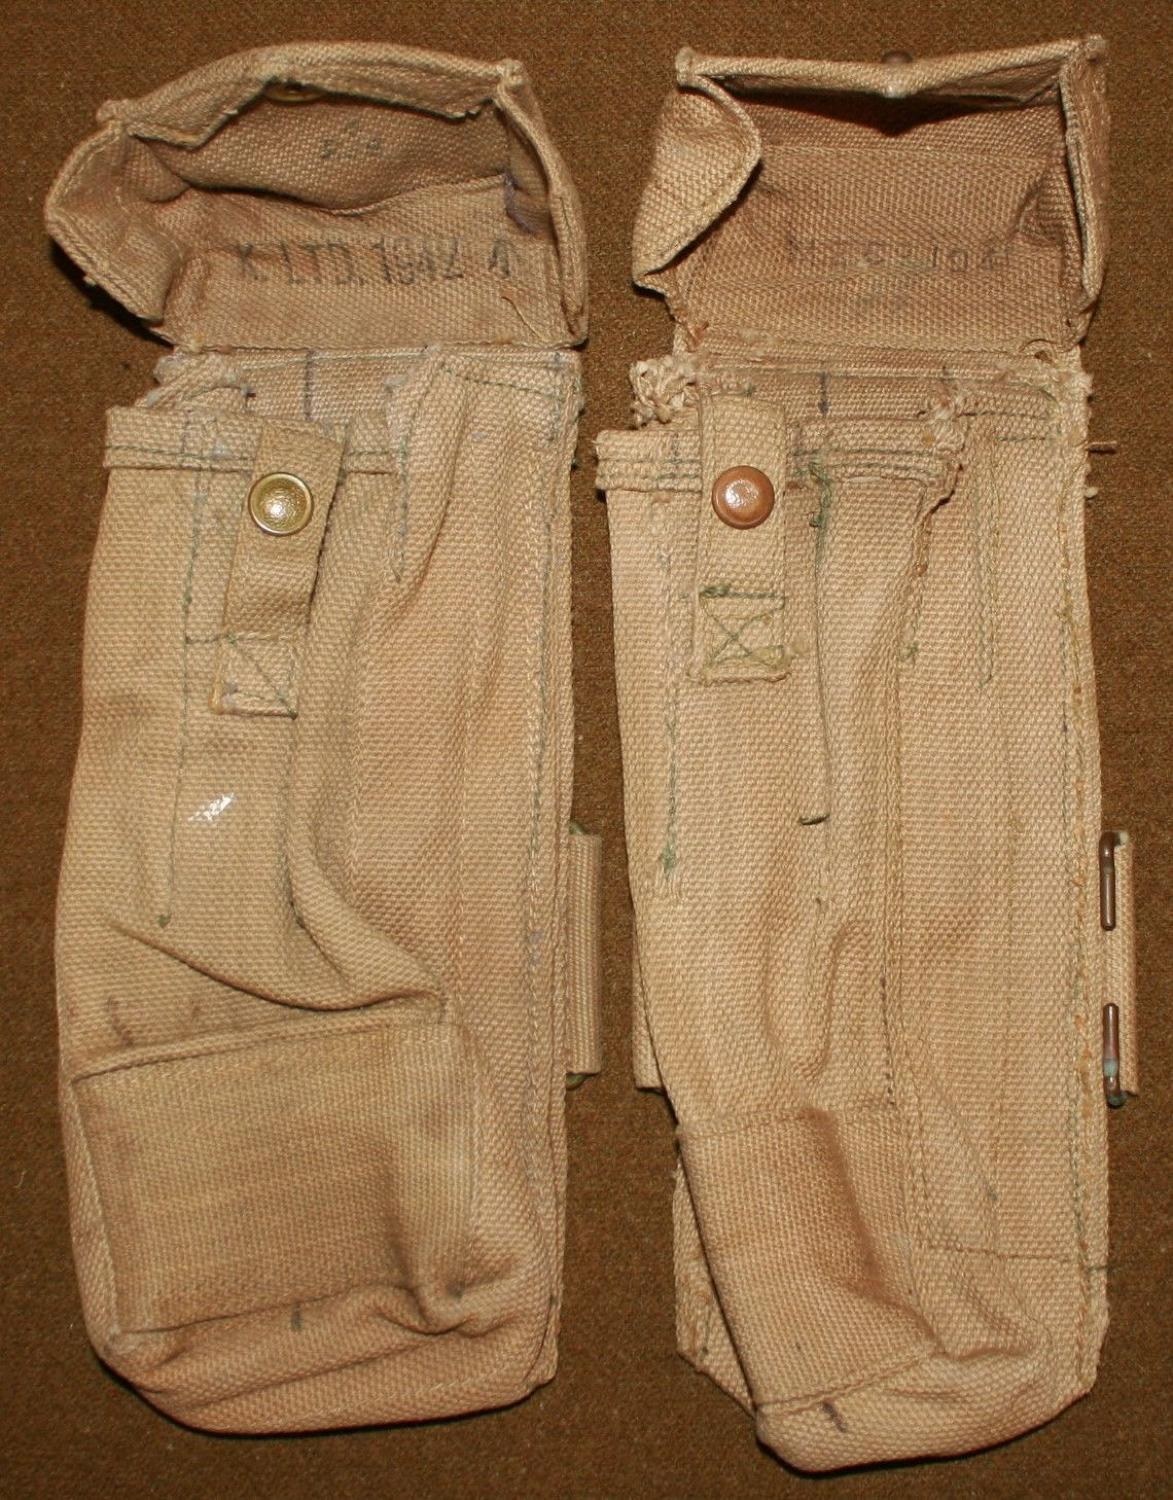 A PAIR OF STEN GUN MAGAZINE POUCHES